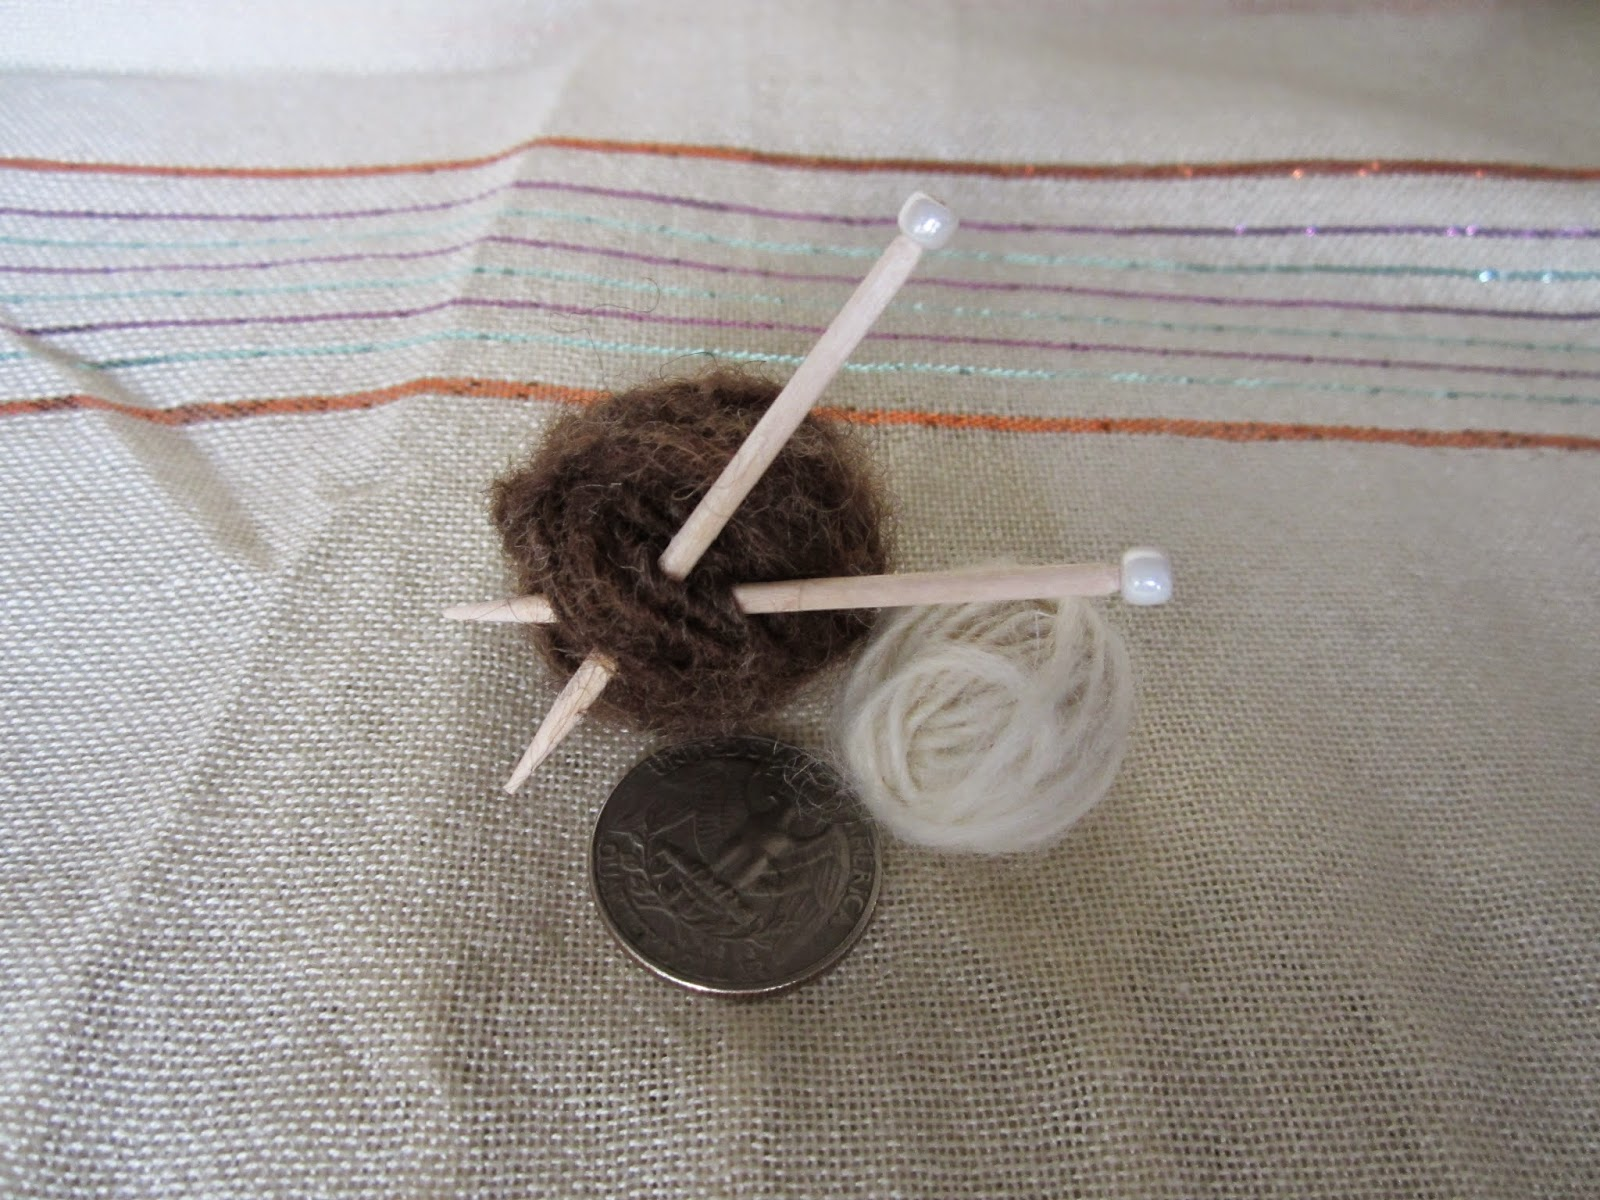 https://www.etsy.com/listing/211580489/miniature-knitting-set-includes-knitting?ref=shop_home_active_2